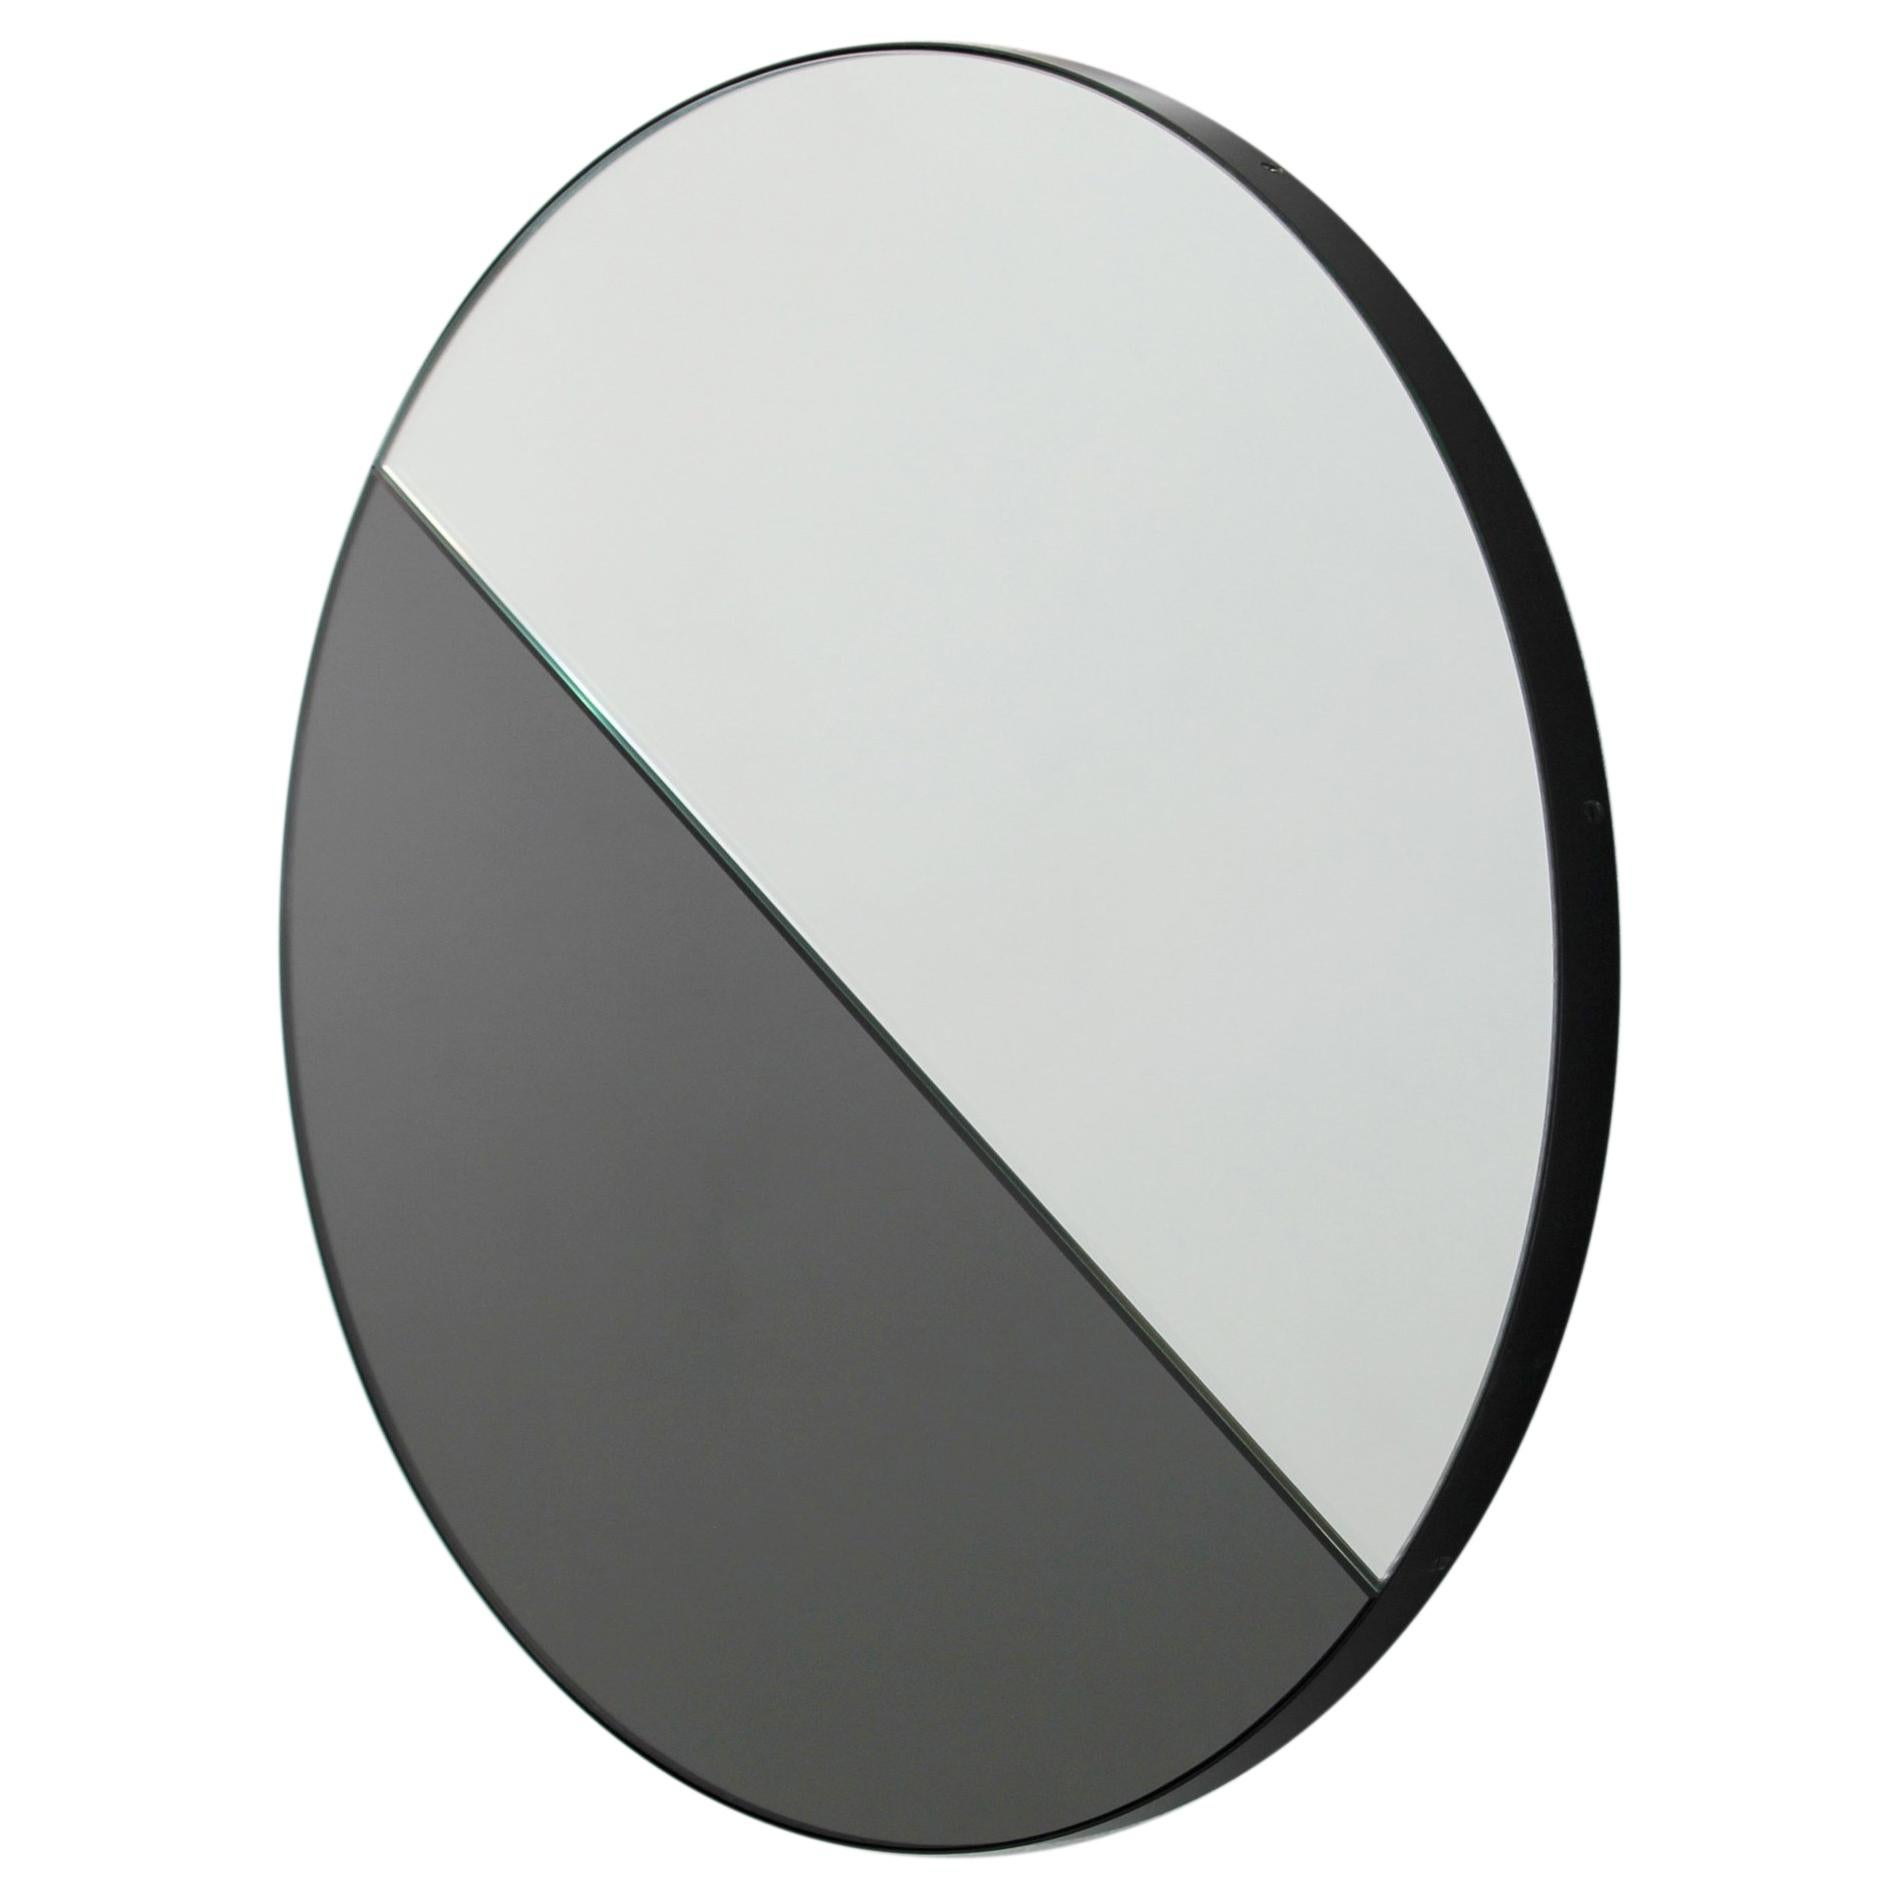 Orbis Dualis™ Mixed Tint Decorative Round Mirror with Black Frame - Large